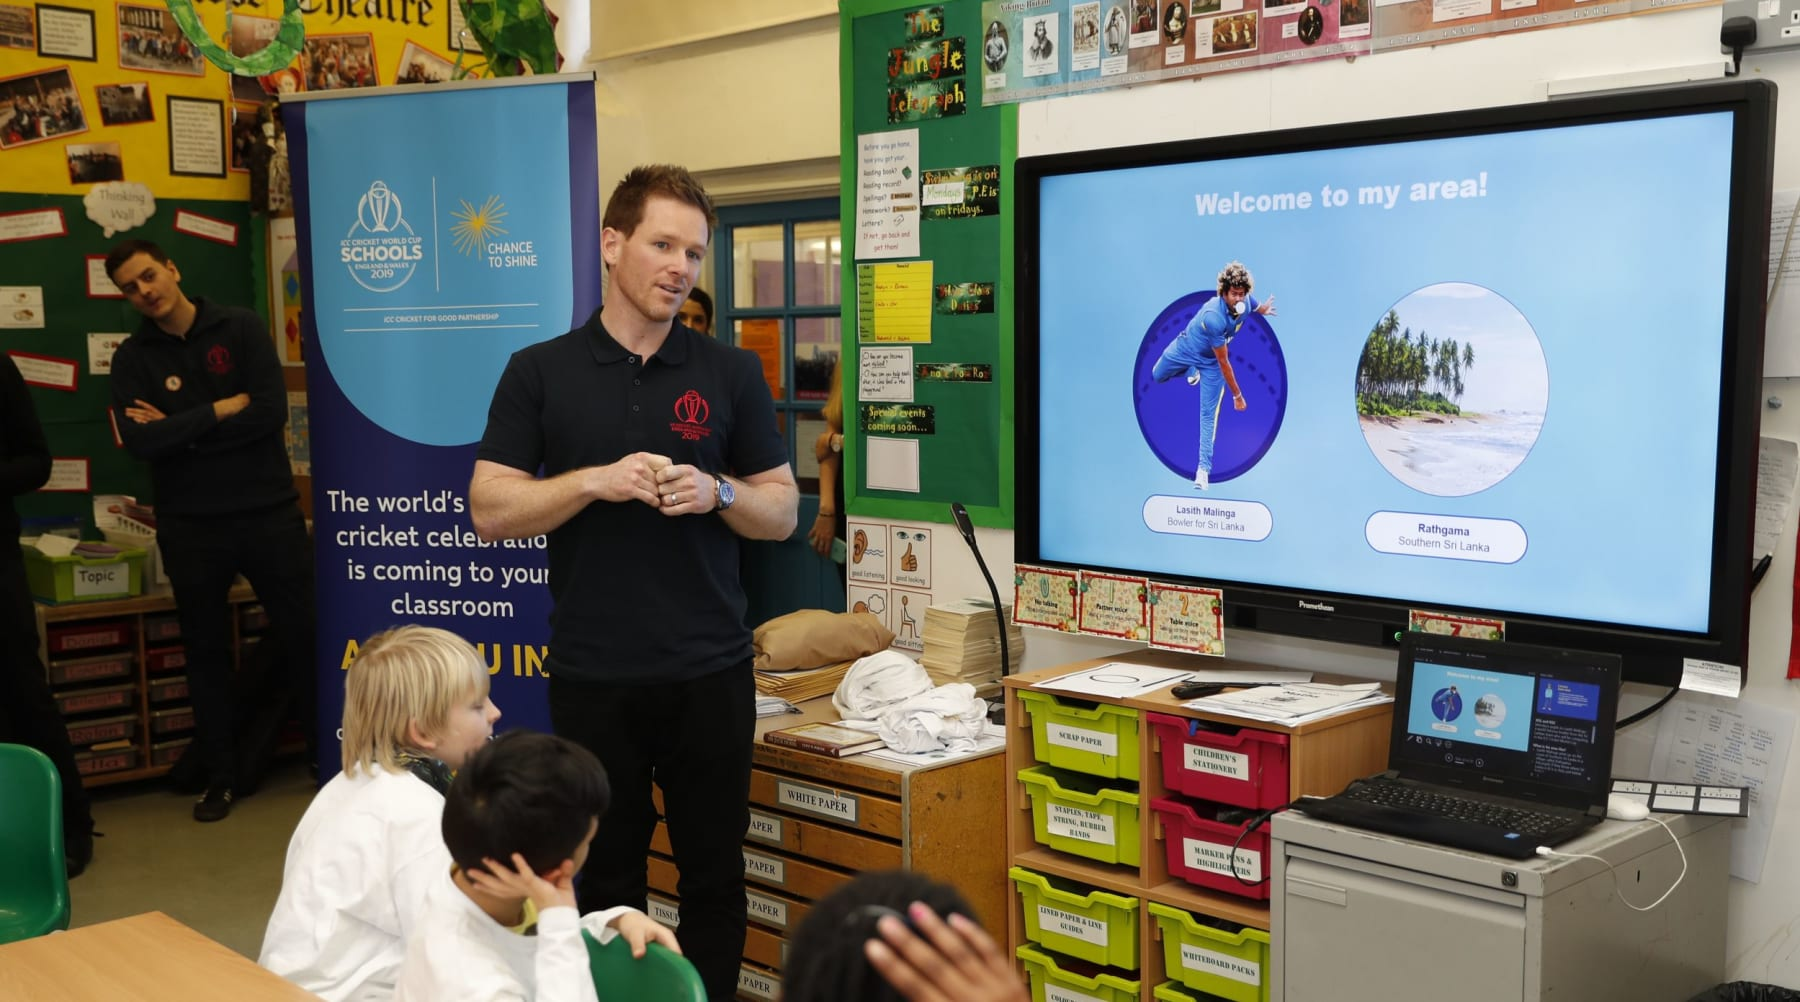 Eoin Morgan goes back to school to launch projects for the ICC Cricket World Cup Schools Programme